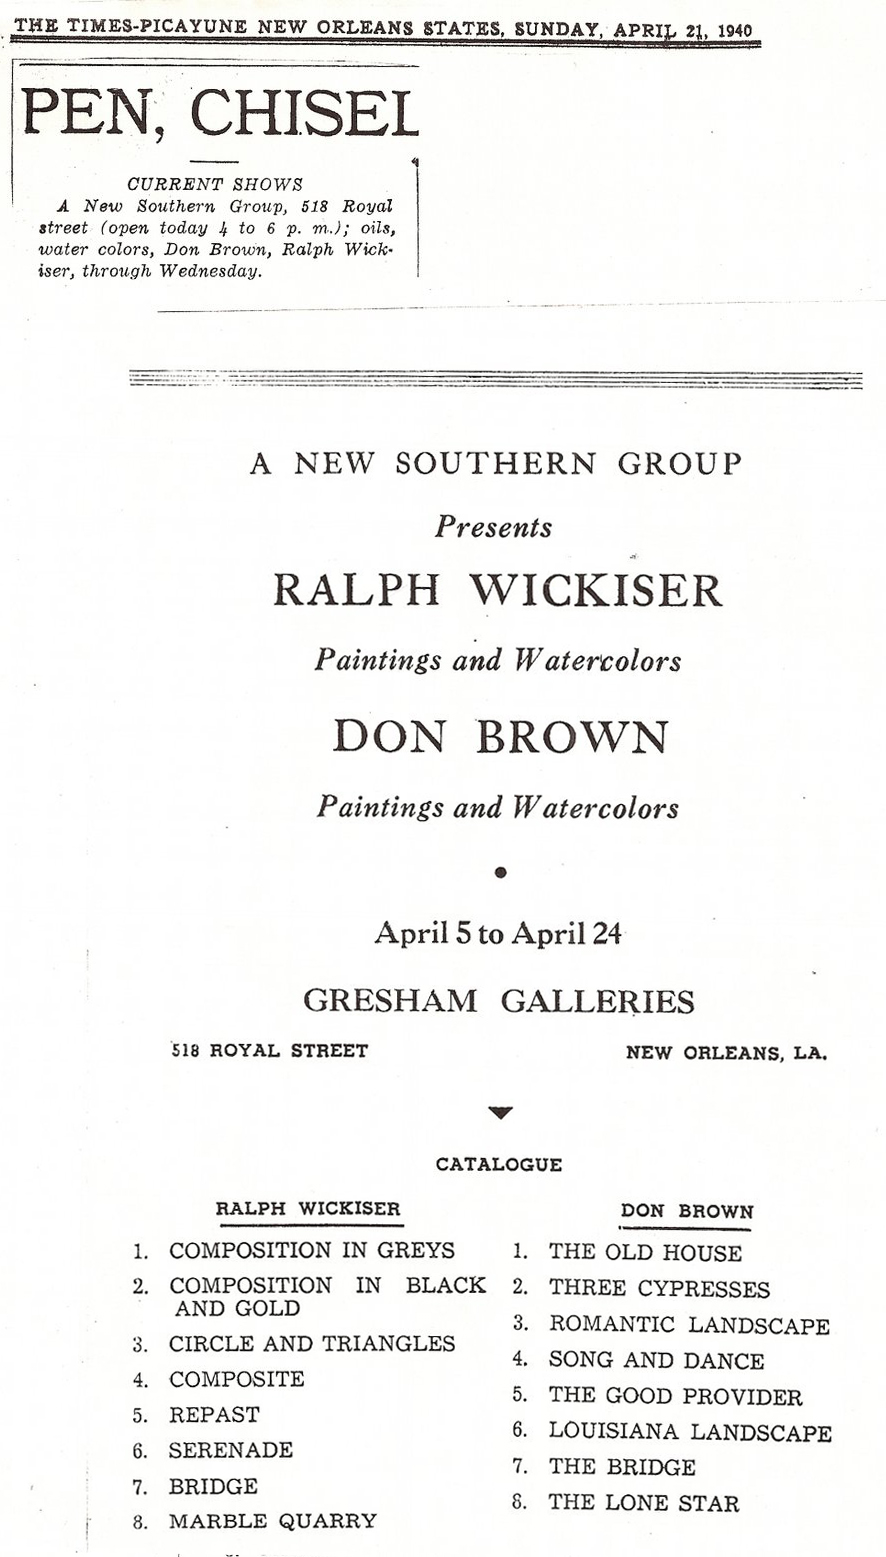 Gresham+Galleries_1940 copy.jpg